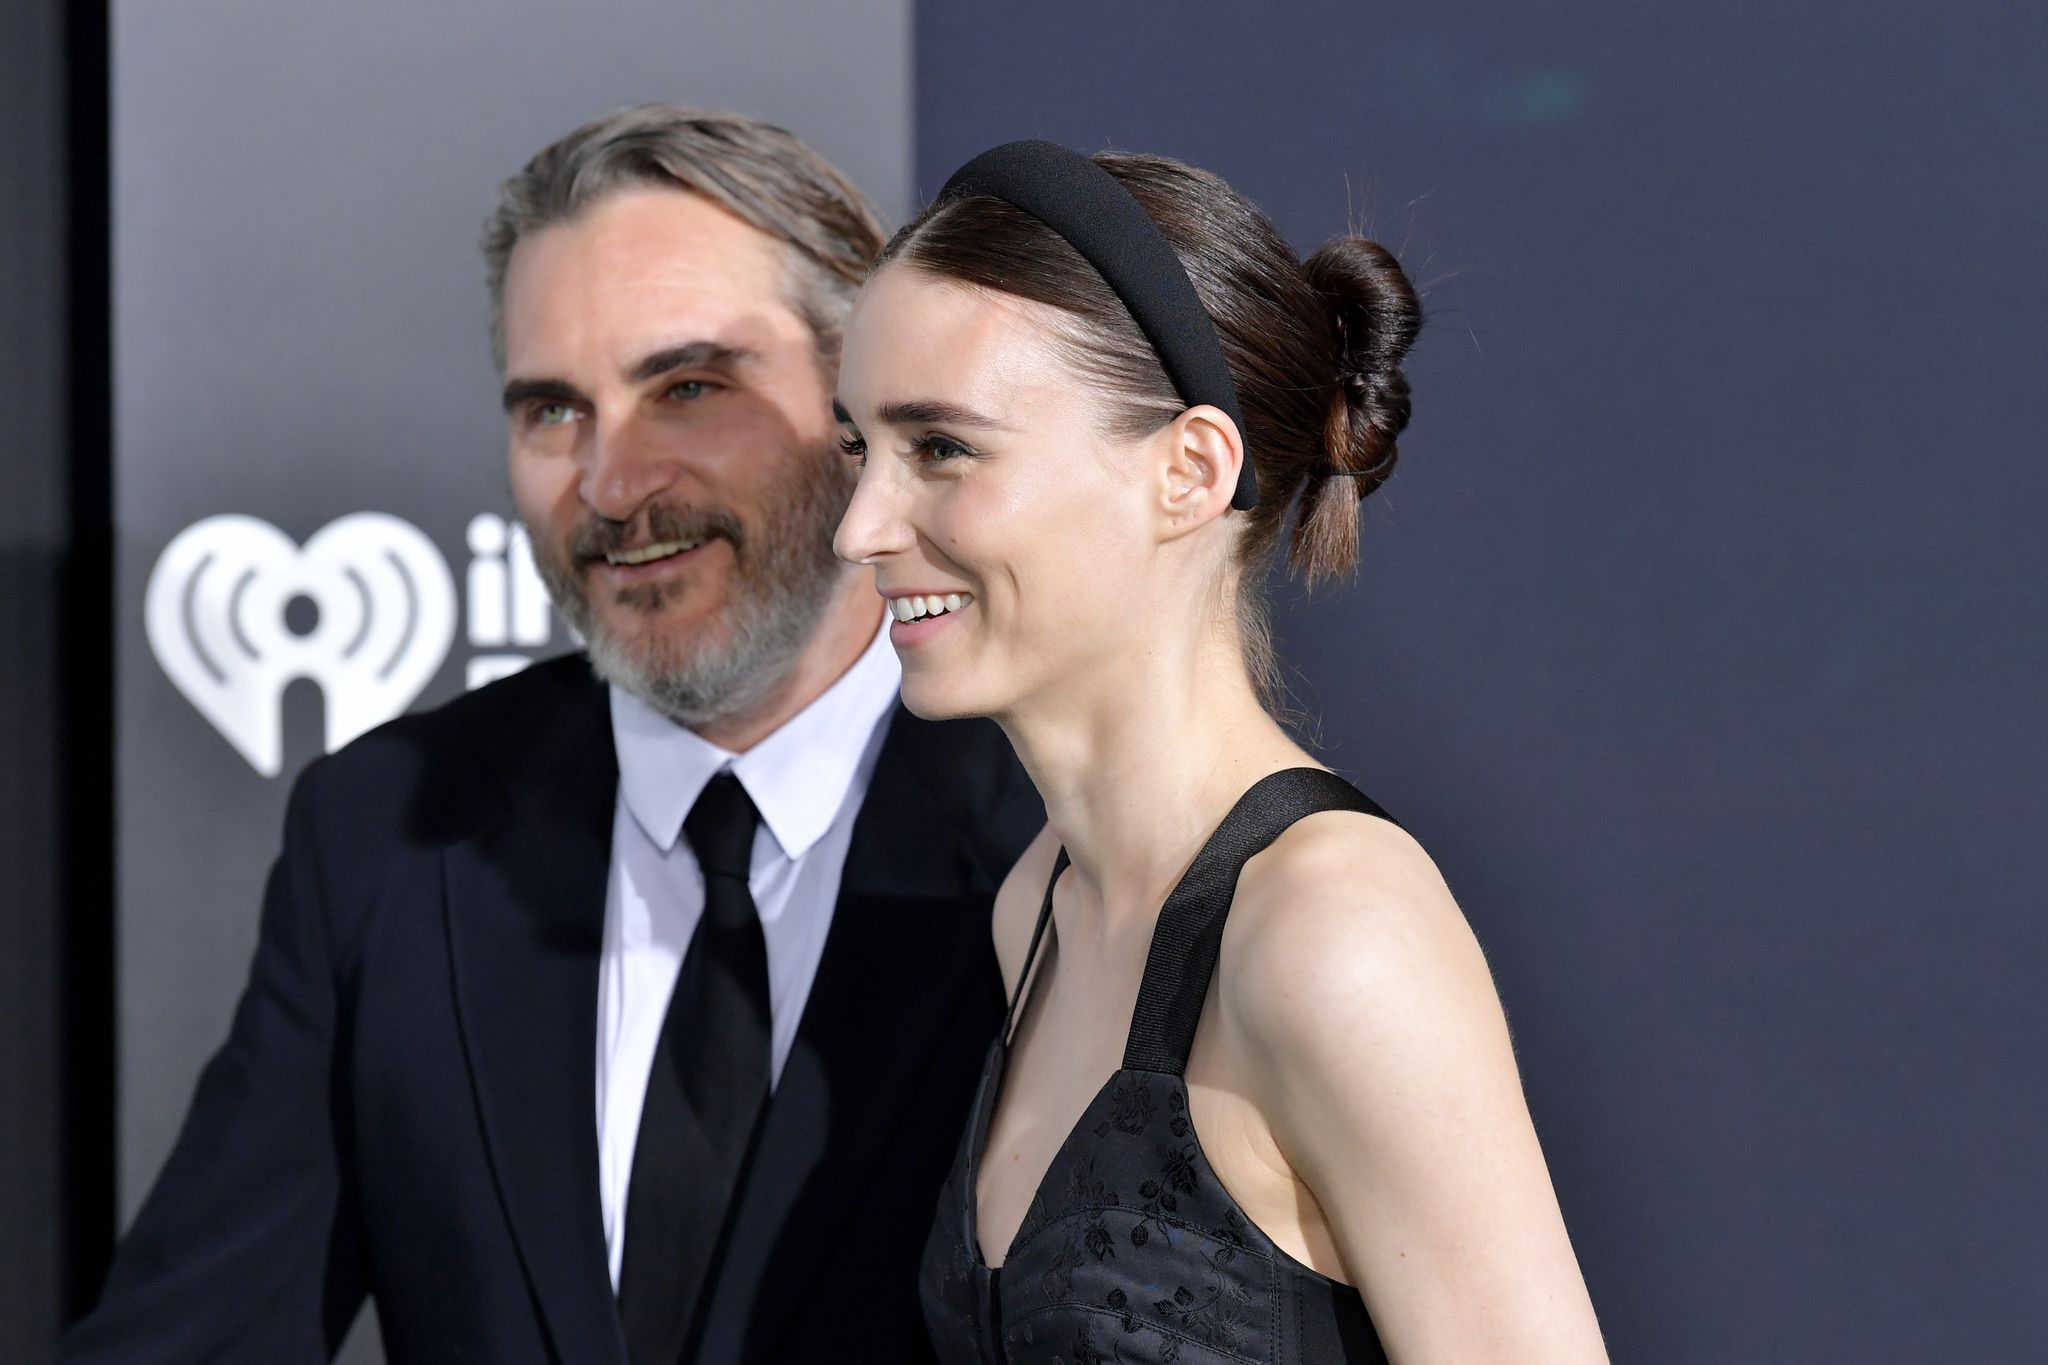 """Joaquin Phoenix and Rooney Mara attend the premiere of """"Joker"""" in September2019 in Hollywood, California 